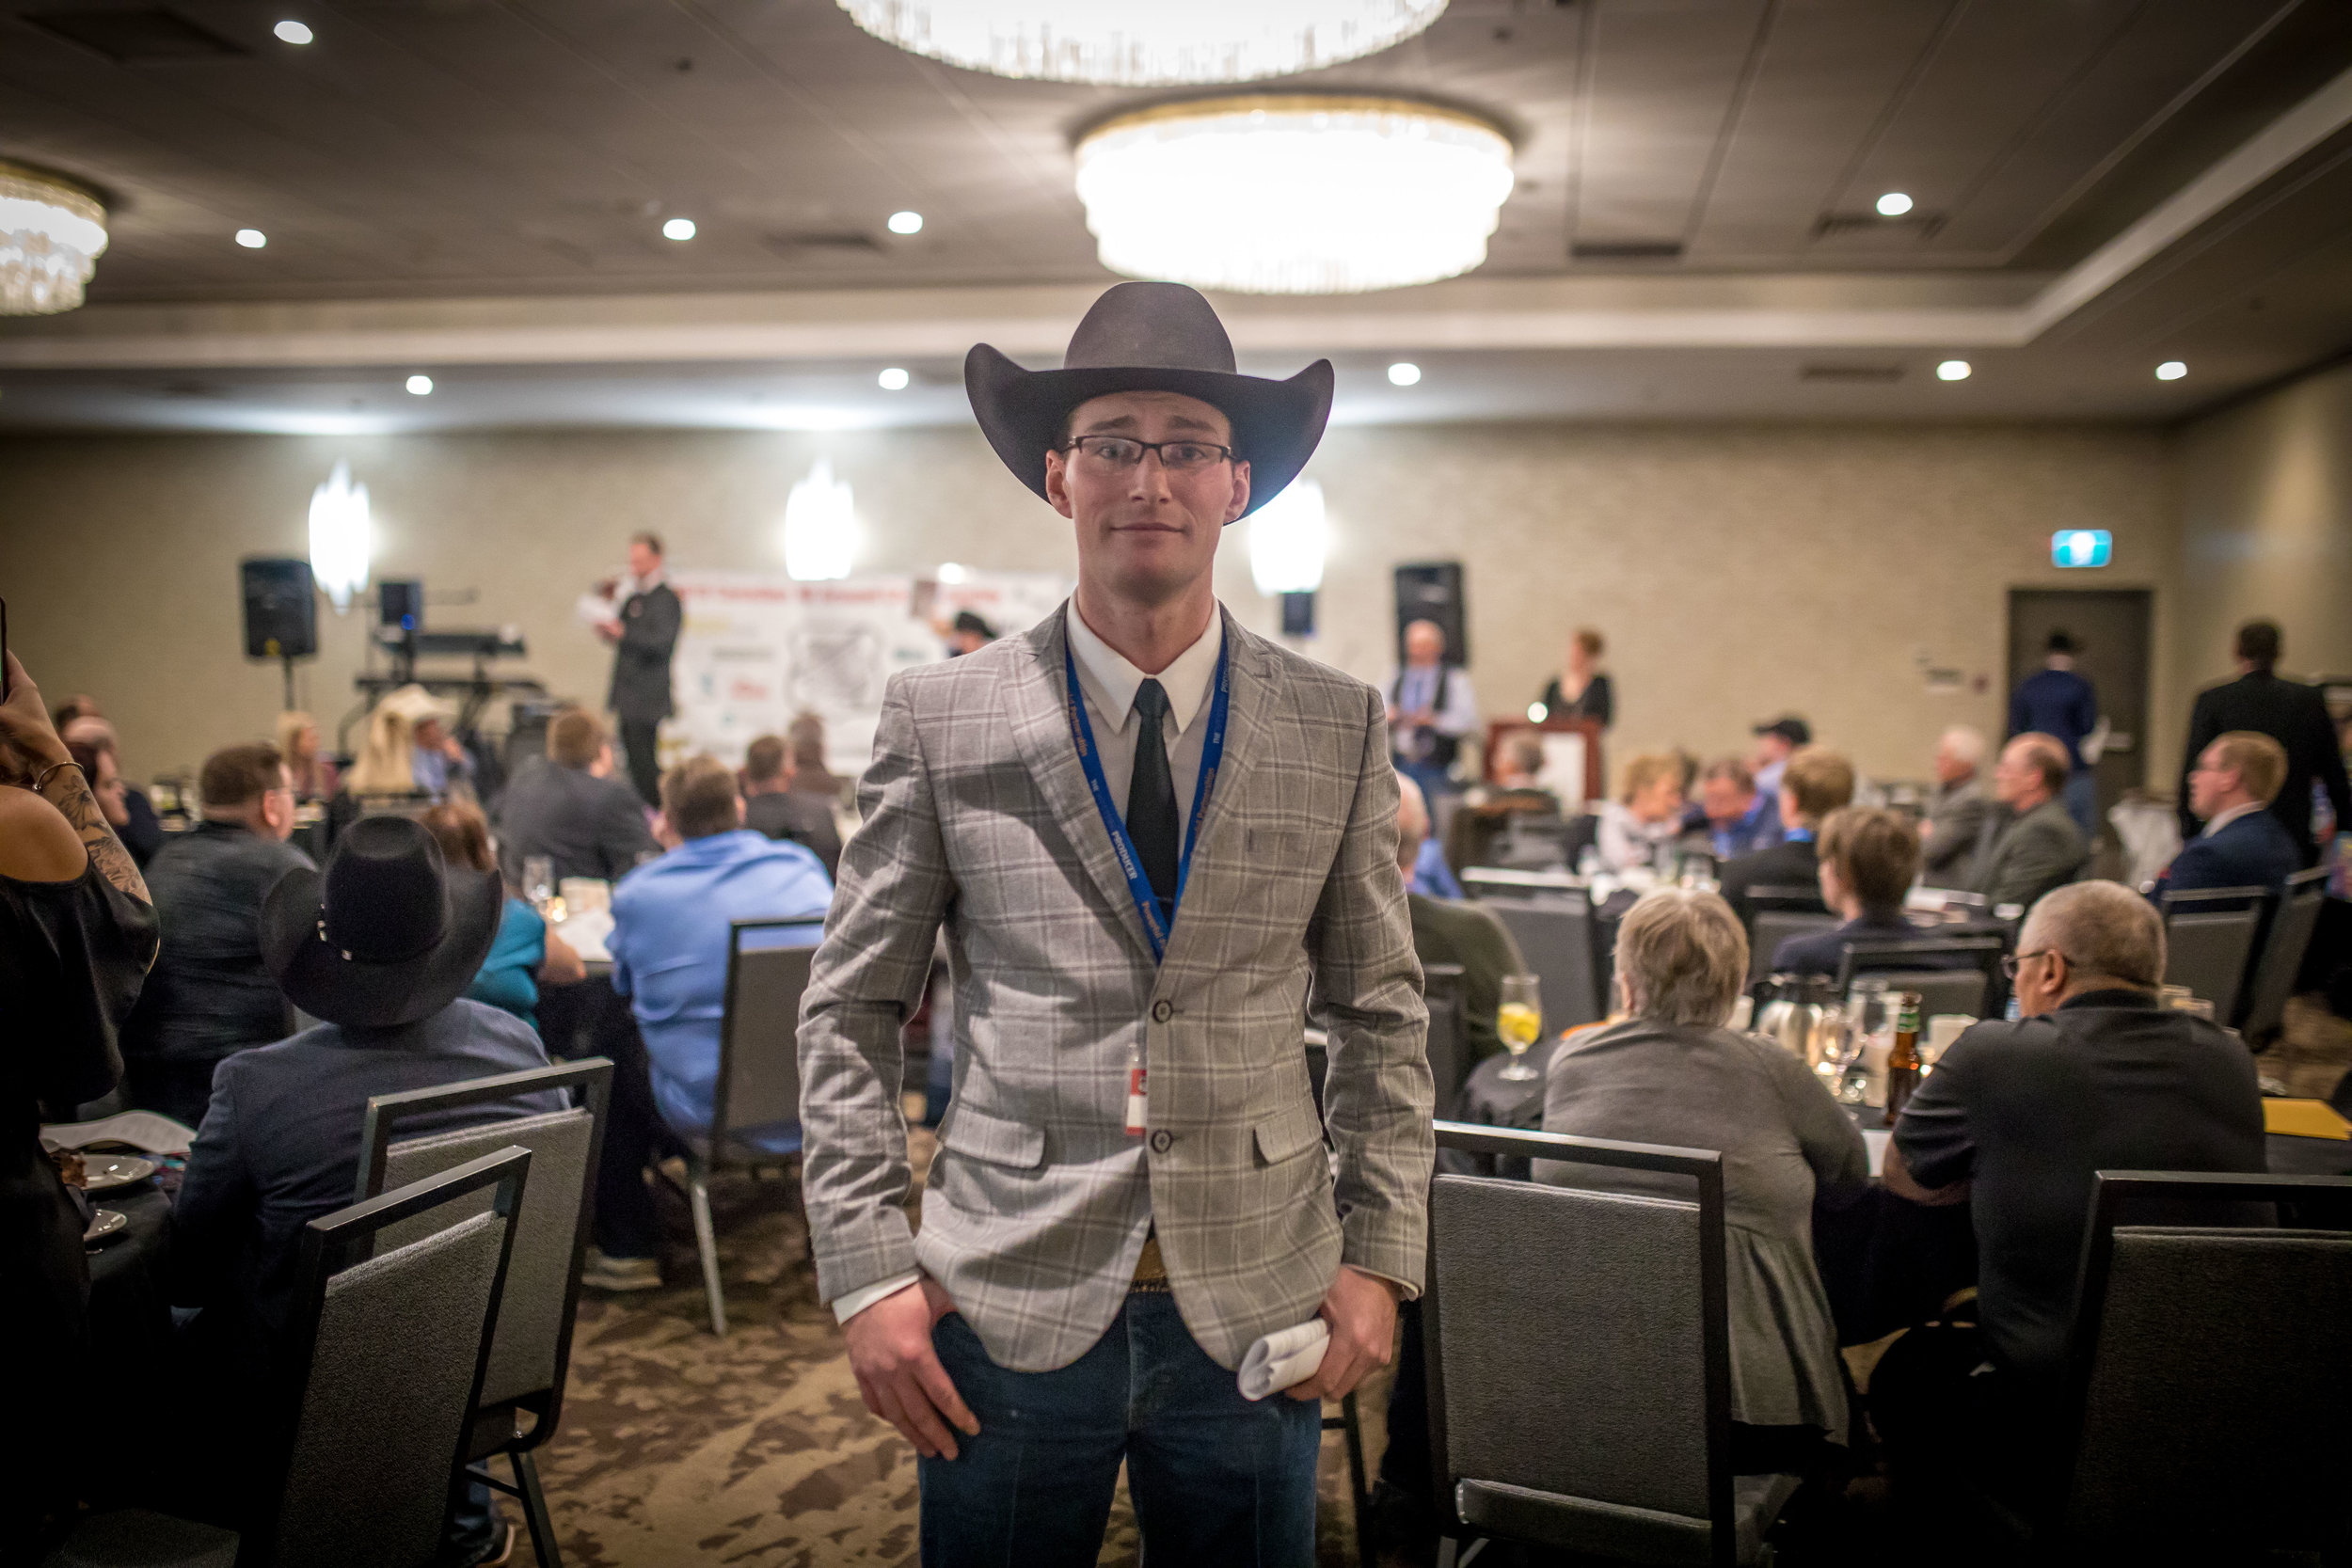 2019 02-01 Alberta Auctioneer Convention Day 02 - Calgary 132.jpg